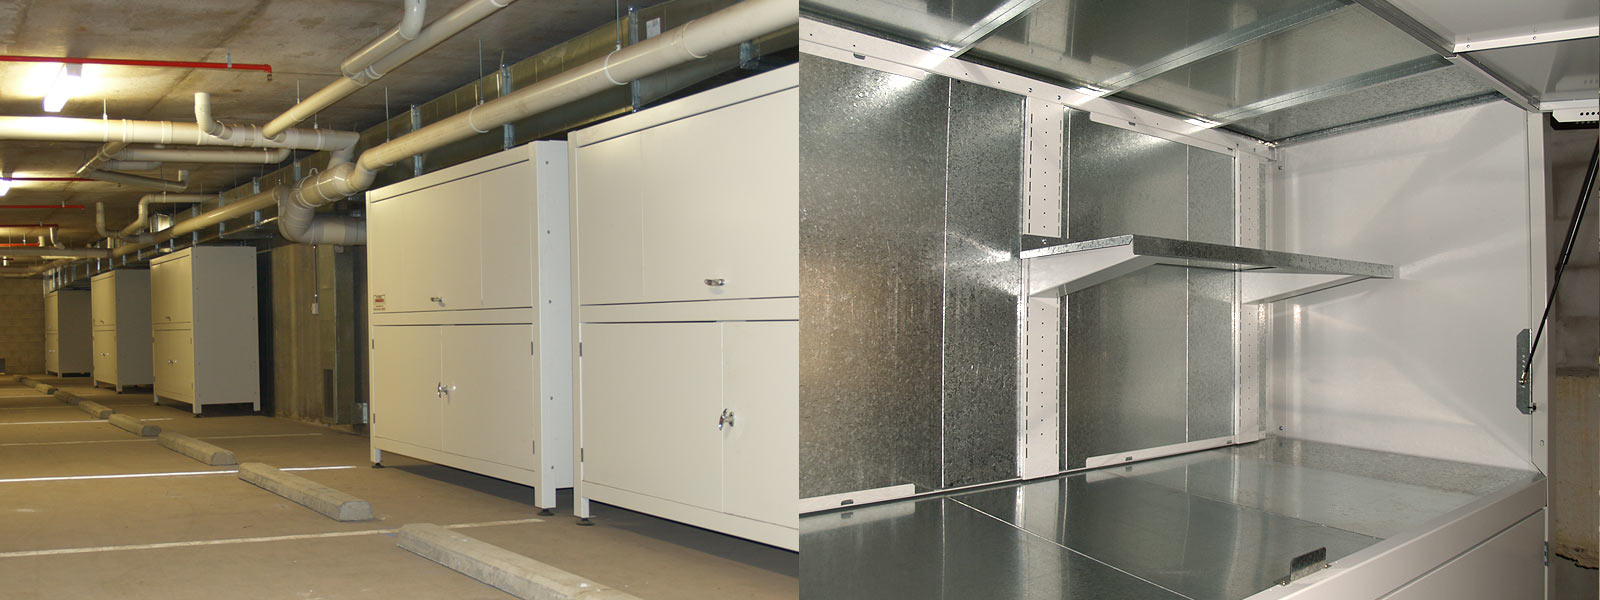 double-height-storage-cabinet